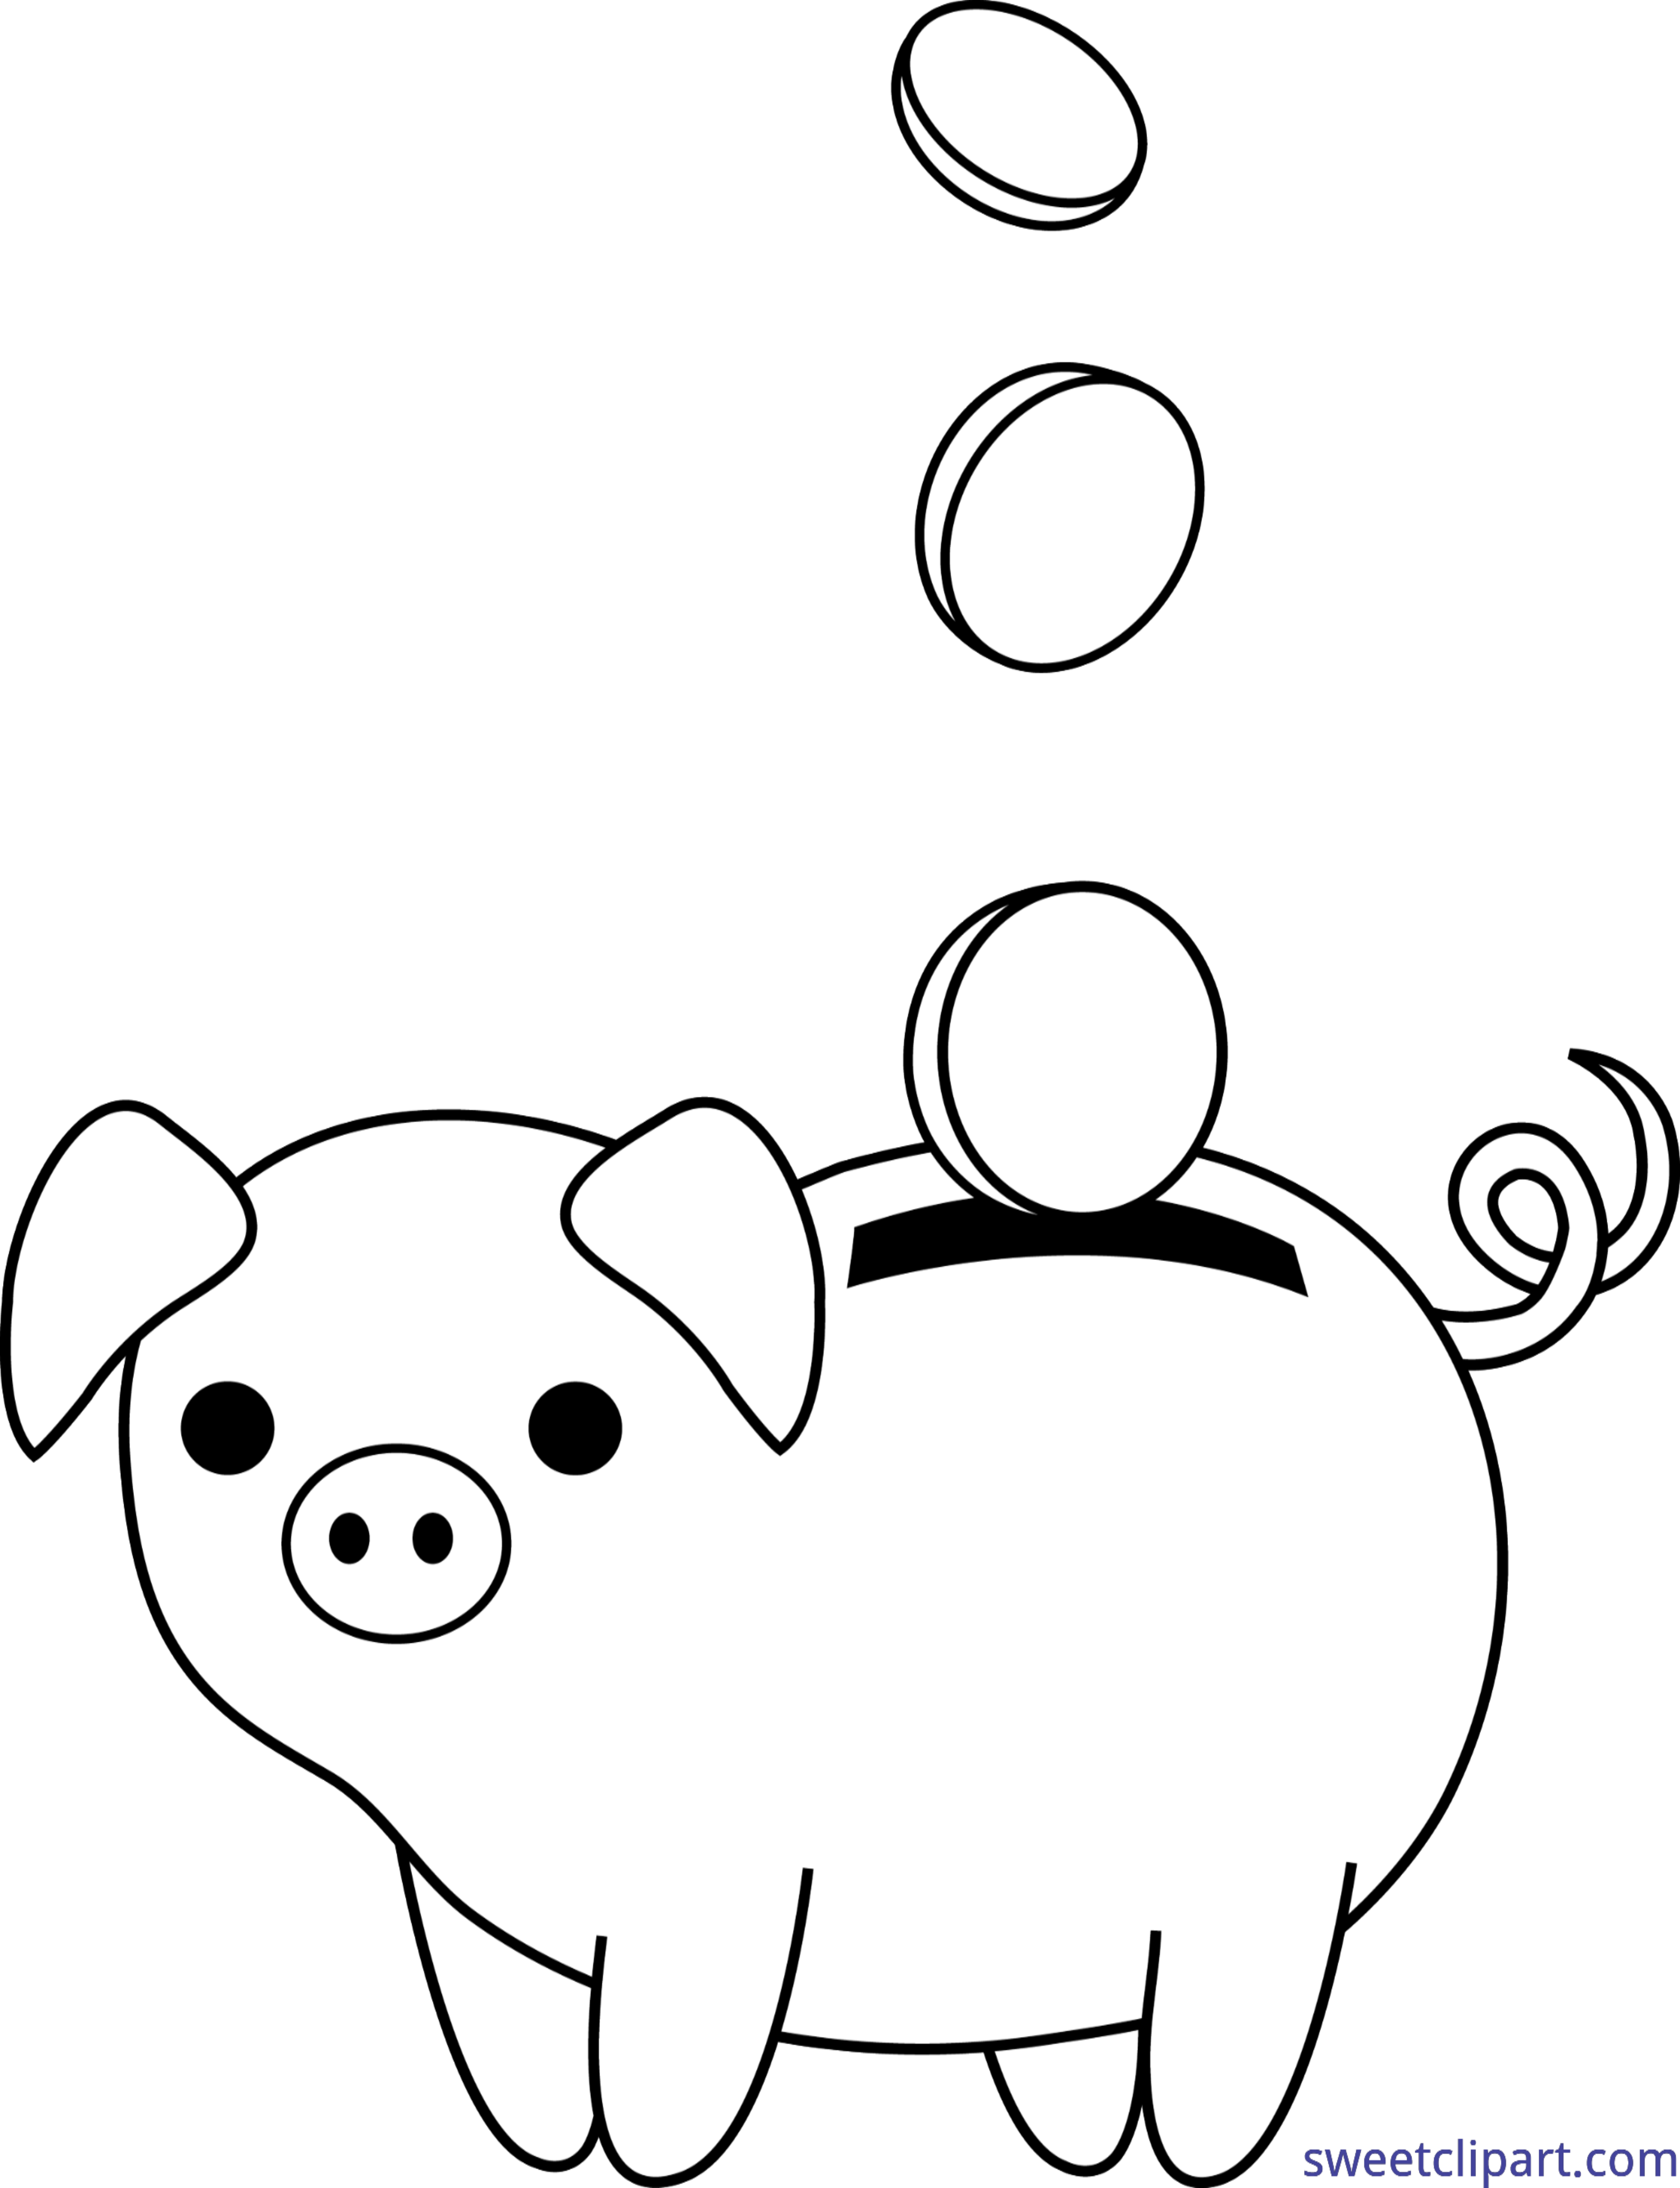 Piggy bank clipart kids image stock Finance Piggy Bank Coins Lineart Clip Art - Sweet Clip Art image stock